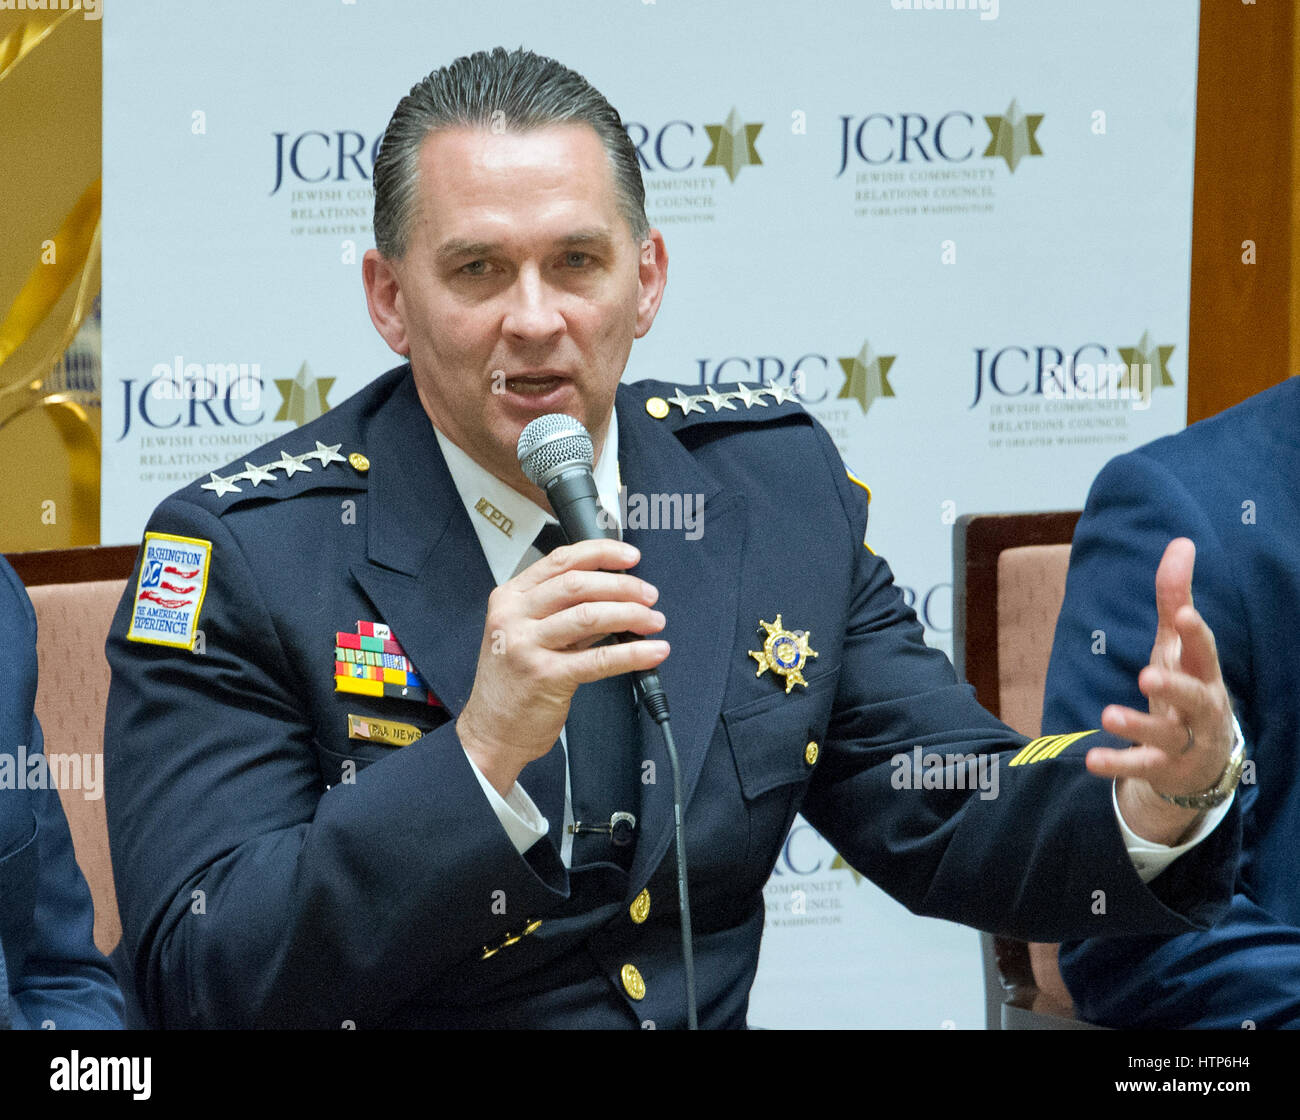 Acting D.C. Police Chief Peter Newsham speaks at the Jewish Community Relations Council of Greater Washington's - Stock Image